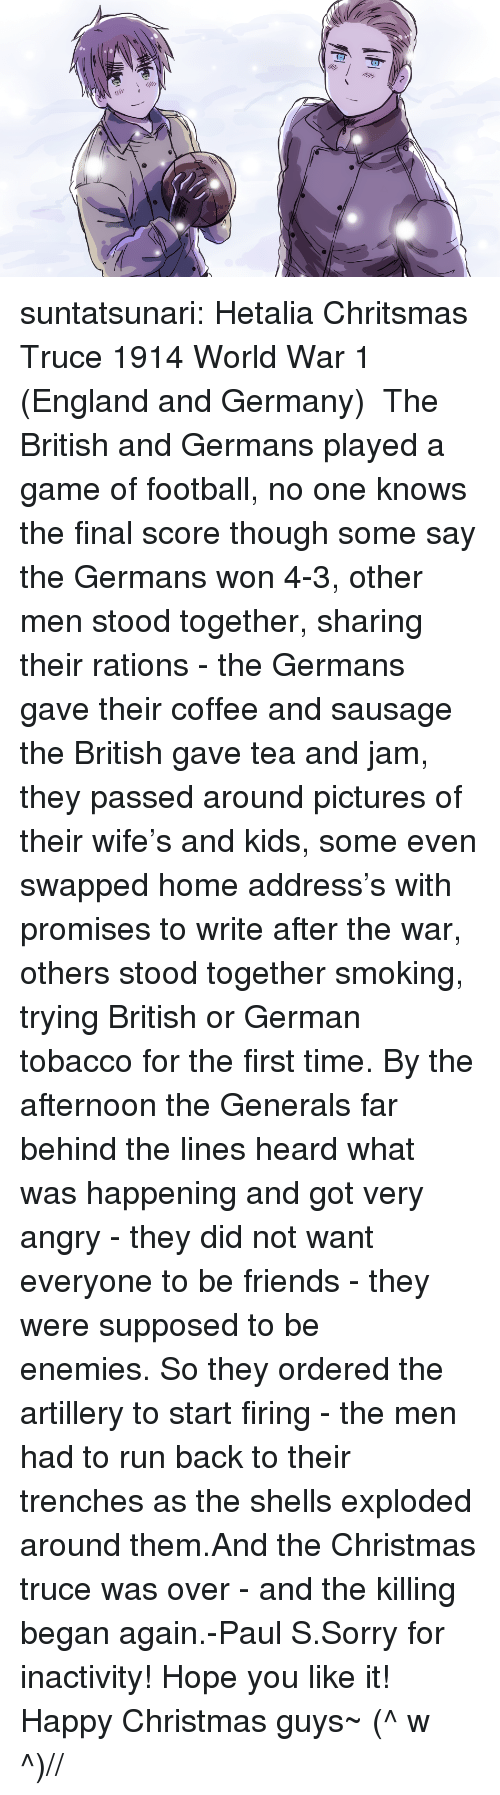 world war 1: suntatsunari:  Hetalia Chritsmas Truce 1914 World War 1 (England and Germany)   The British and Germans played a game of football, no one knows the final score though some say the Germans won 4-3, other men stood together, sharing their rations - the Germans gave their coffee and sausage the British gave tea and jam, they passed around pictures of their wife's and kids, some even swapped home address's with promises to write after the war, others stood together smoking, trying British or German tobacco for the first time. By the afternoon the Generals far behind the lines heard what was happening and got very angry - they did not want everyone to be friends - they were supposed to be enemies. So they ordered the artillery to start firing - the men had to run back to their trenches as the shells exploded around them.And the Christmas truce was over - and the killing began again.-Paul S.Sorry for inactivity! Hope you like it! Happy Christmas guys~ (^ w ^)//